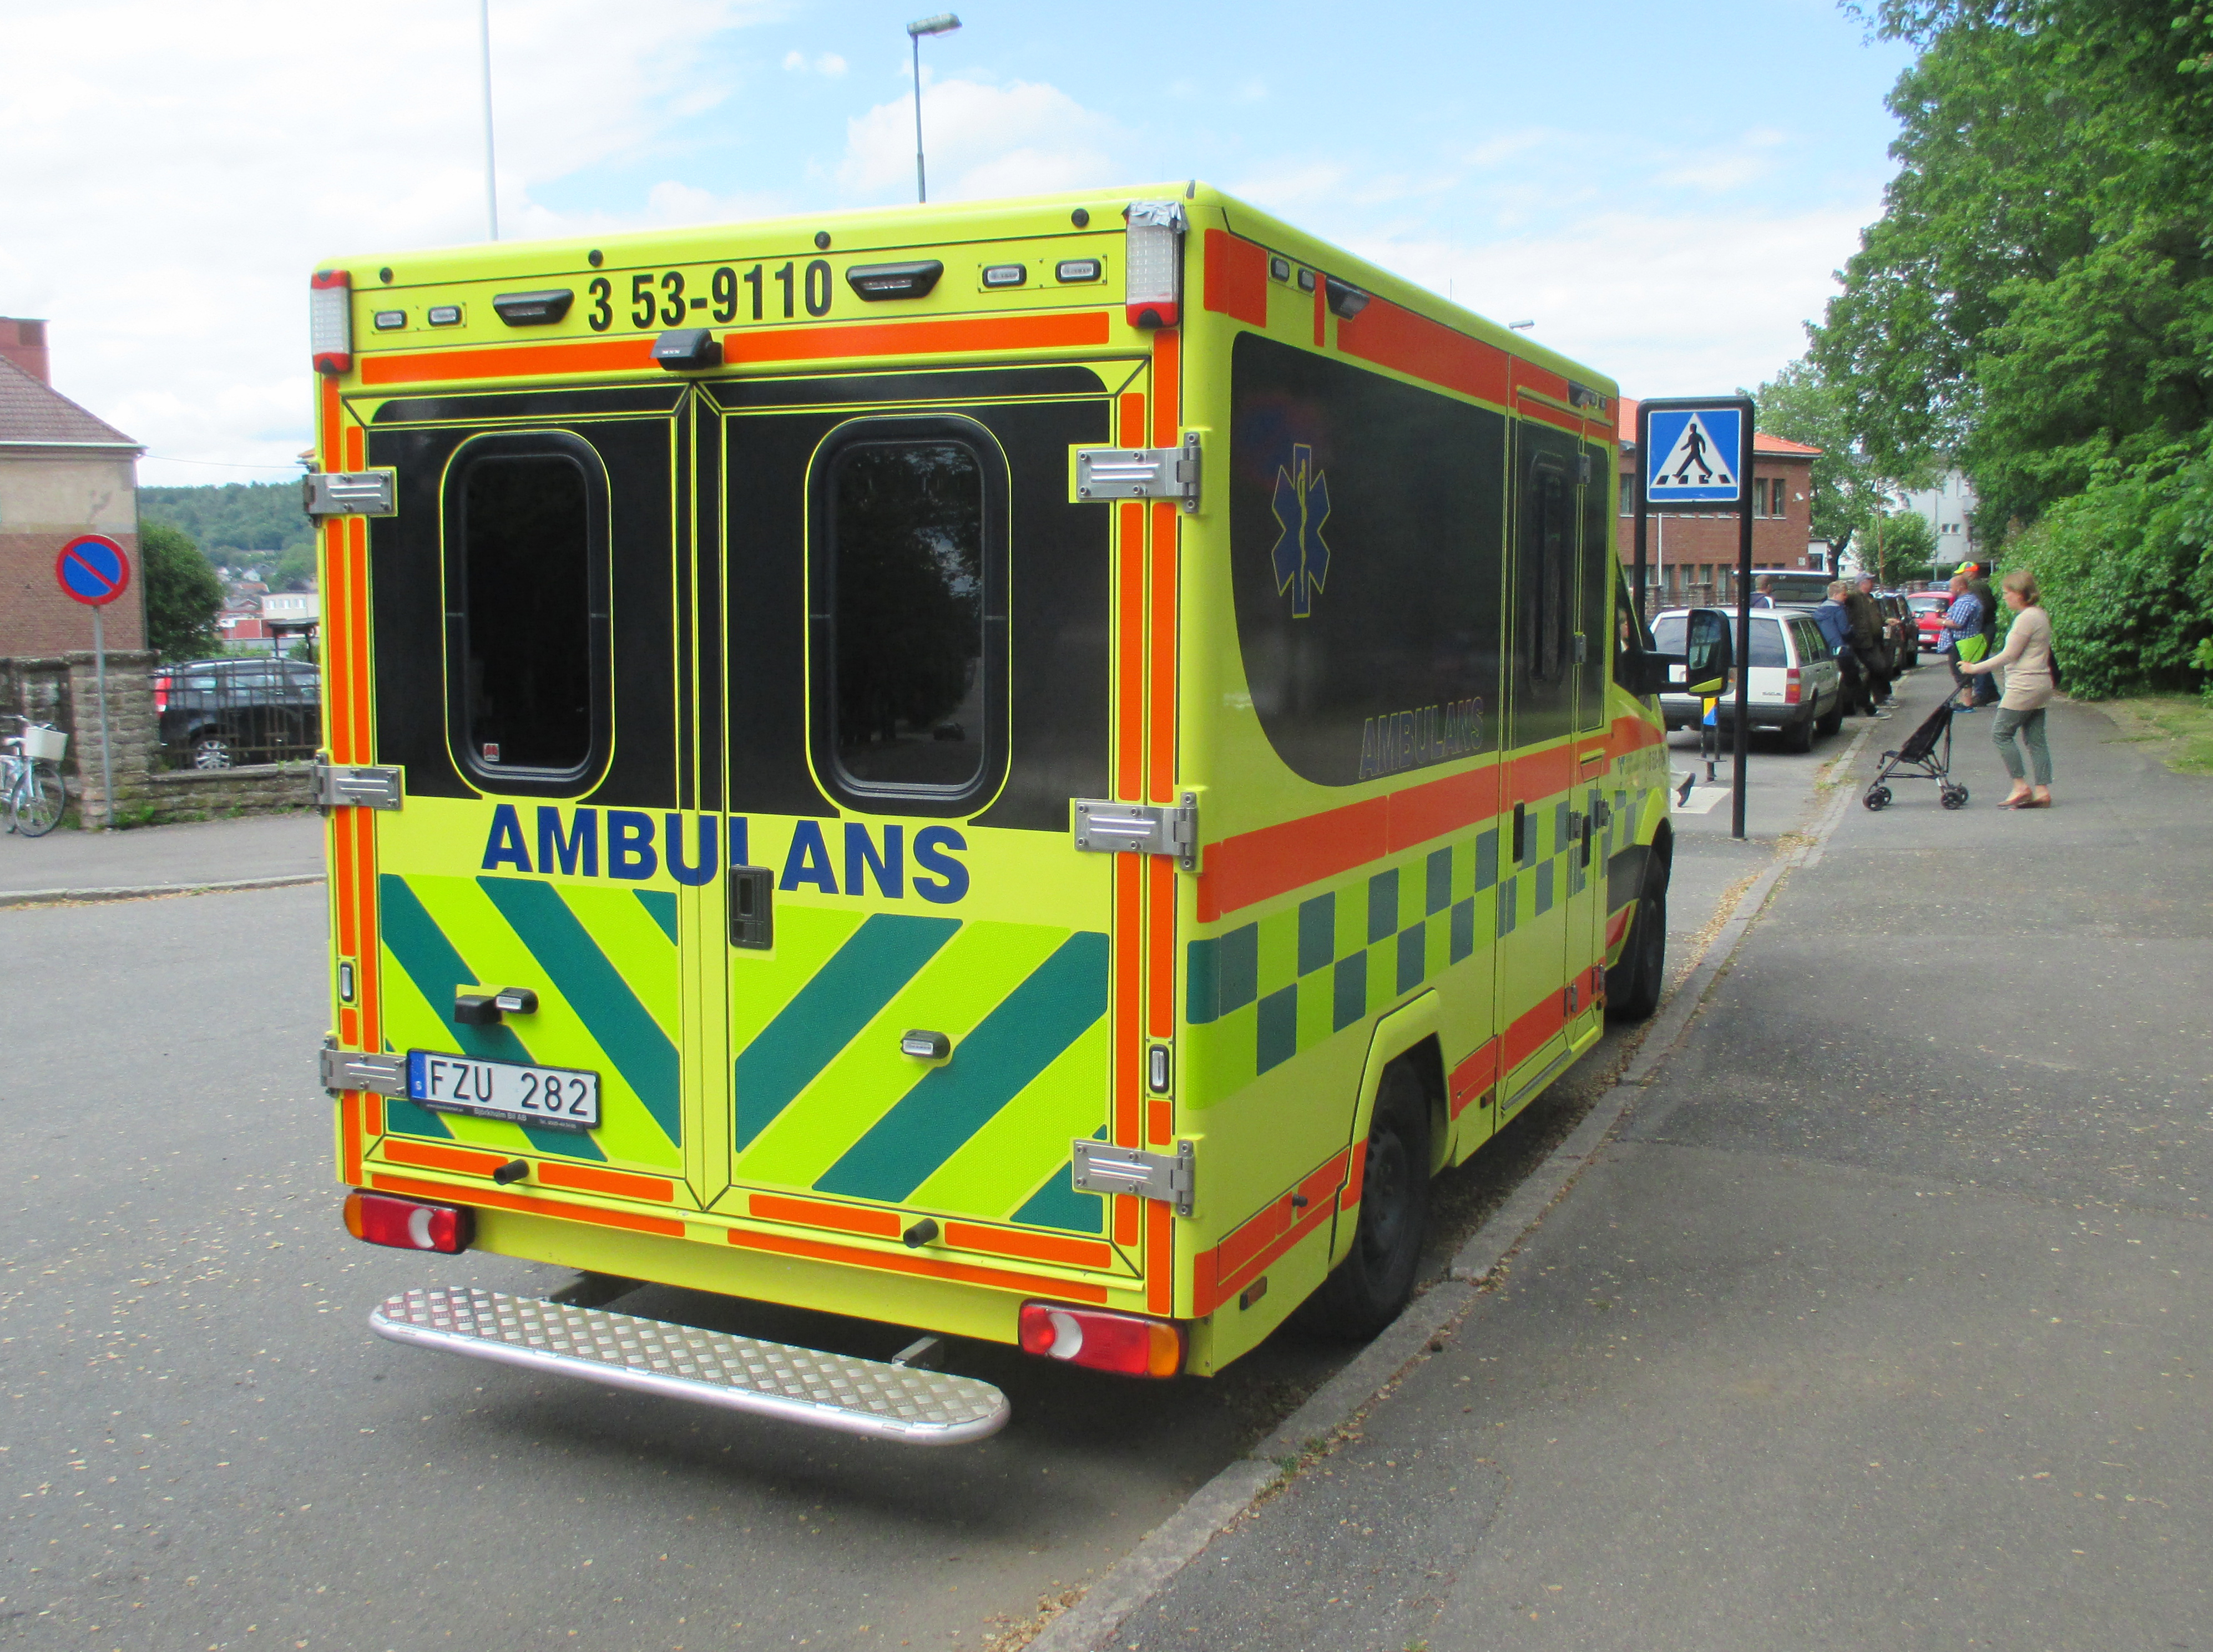 File:Ambulans Mercedes Benz Sprinter 2013 - 2343.jpg